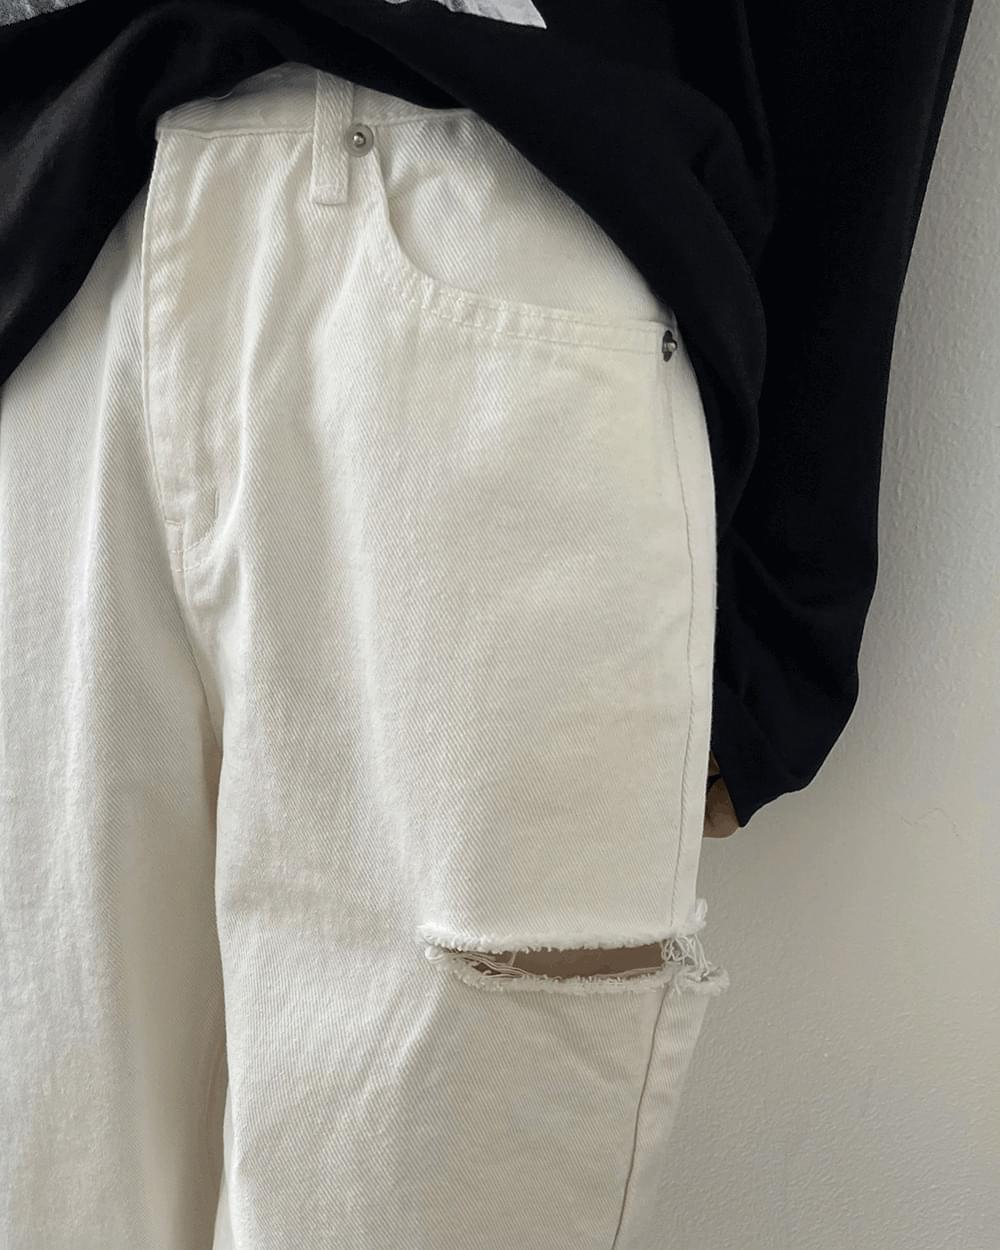 Open white wide pants next to Janer